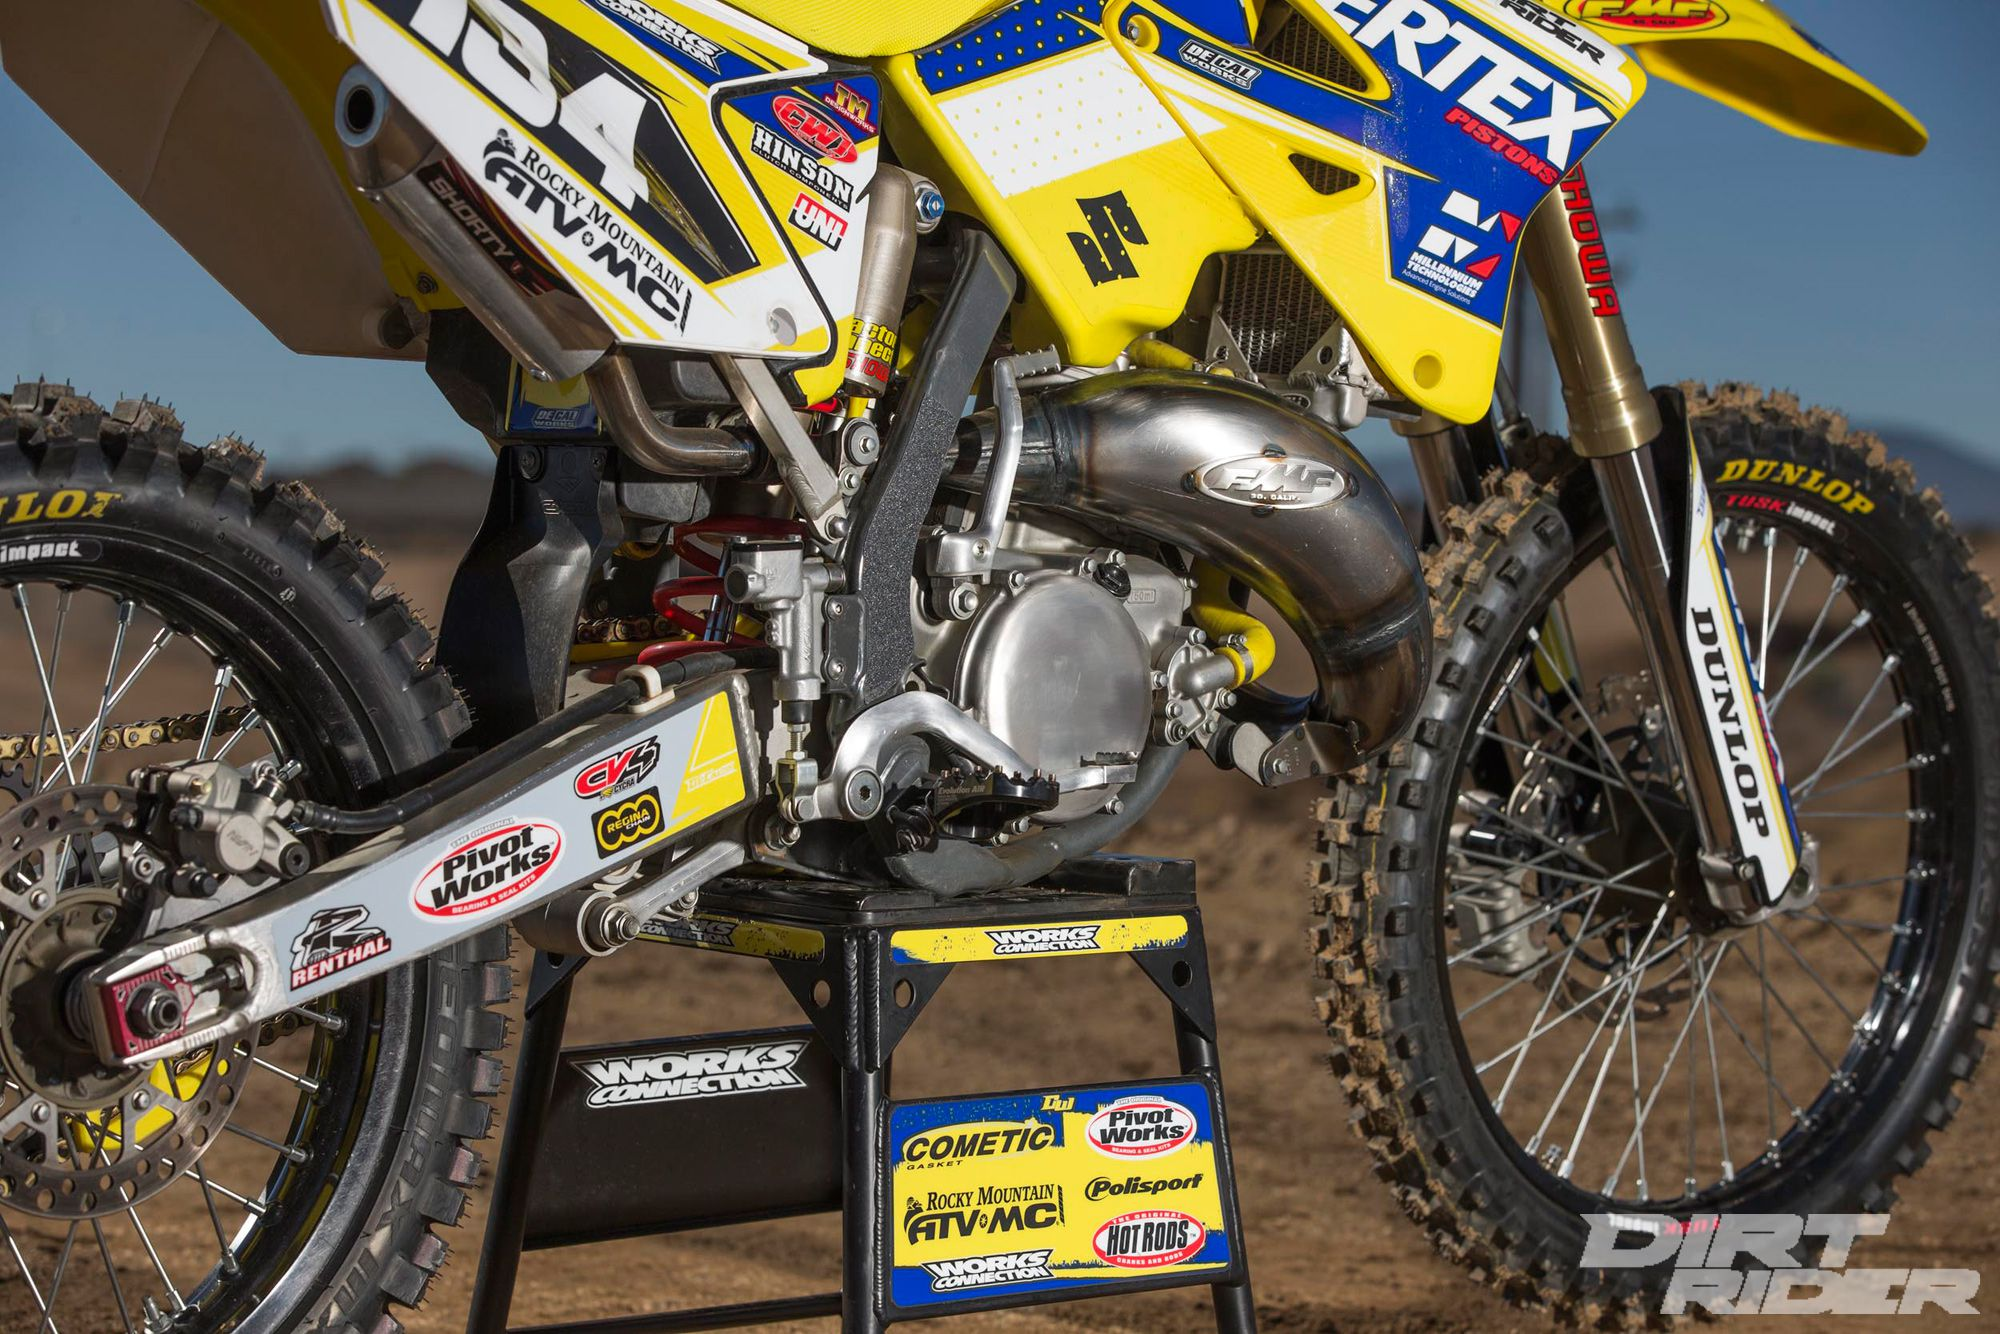 2006 Suzuki RM125 Project Bike Review | Dirt Rider